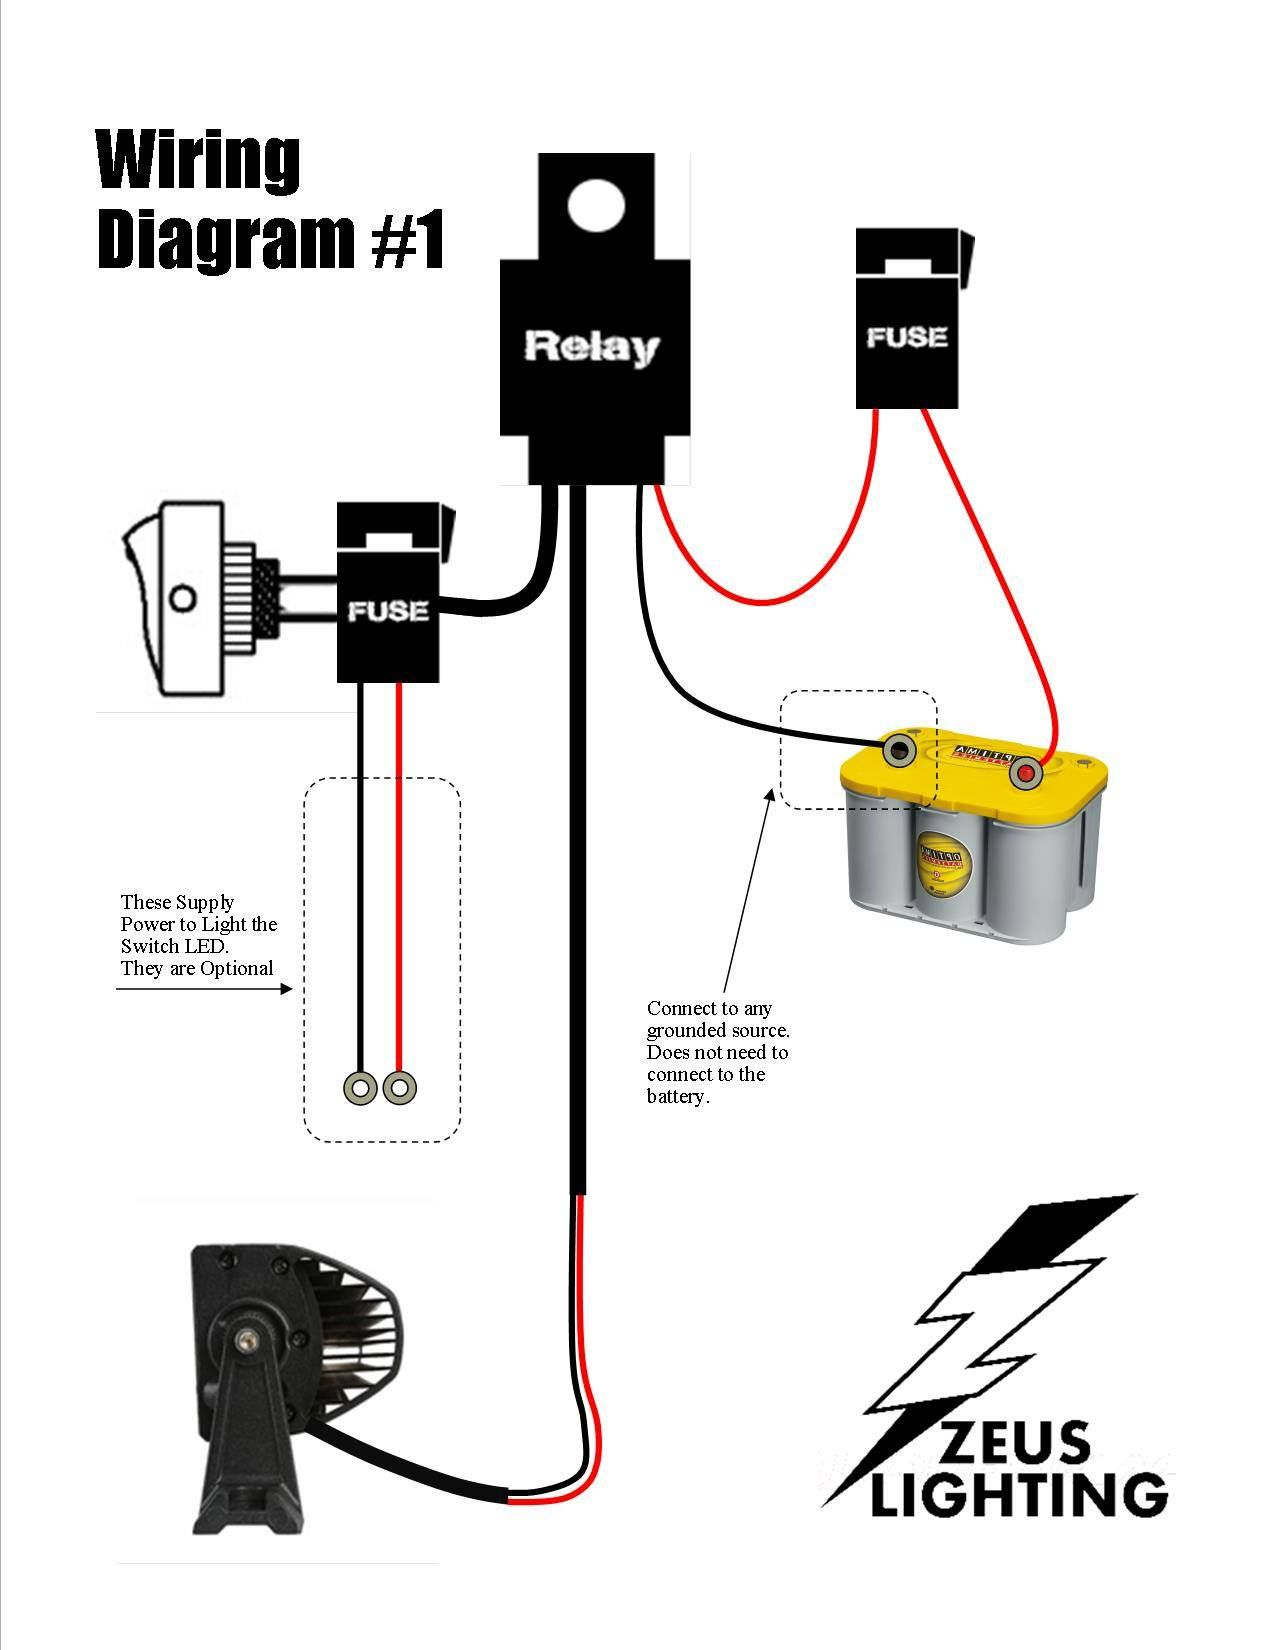 Pin By Patrick Makowski On Tractor Pinterest Jeep Cars And Trucks Led Wiring Basics